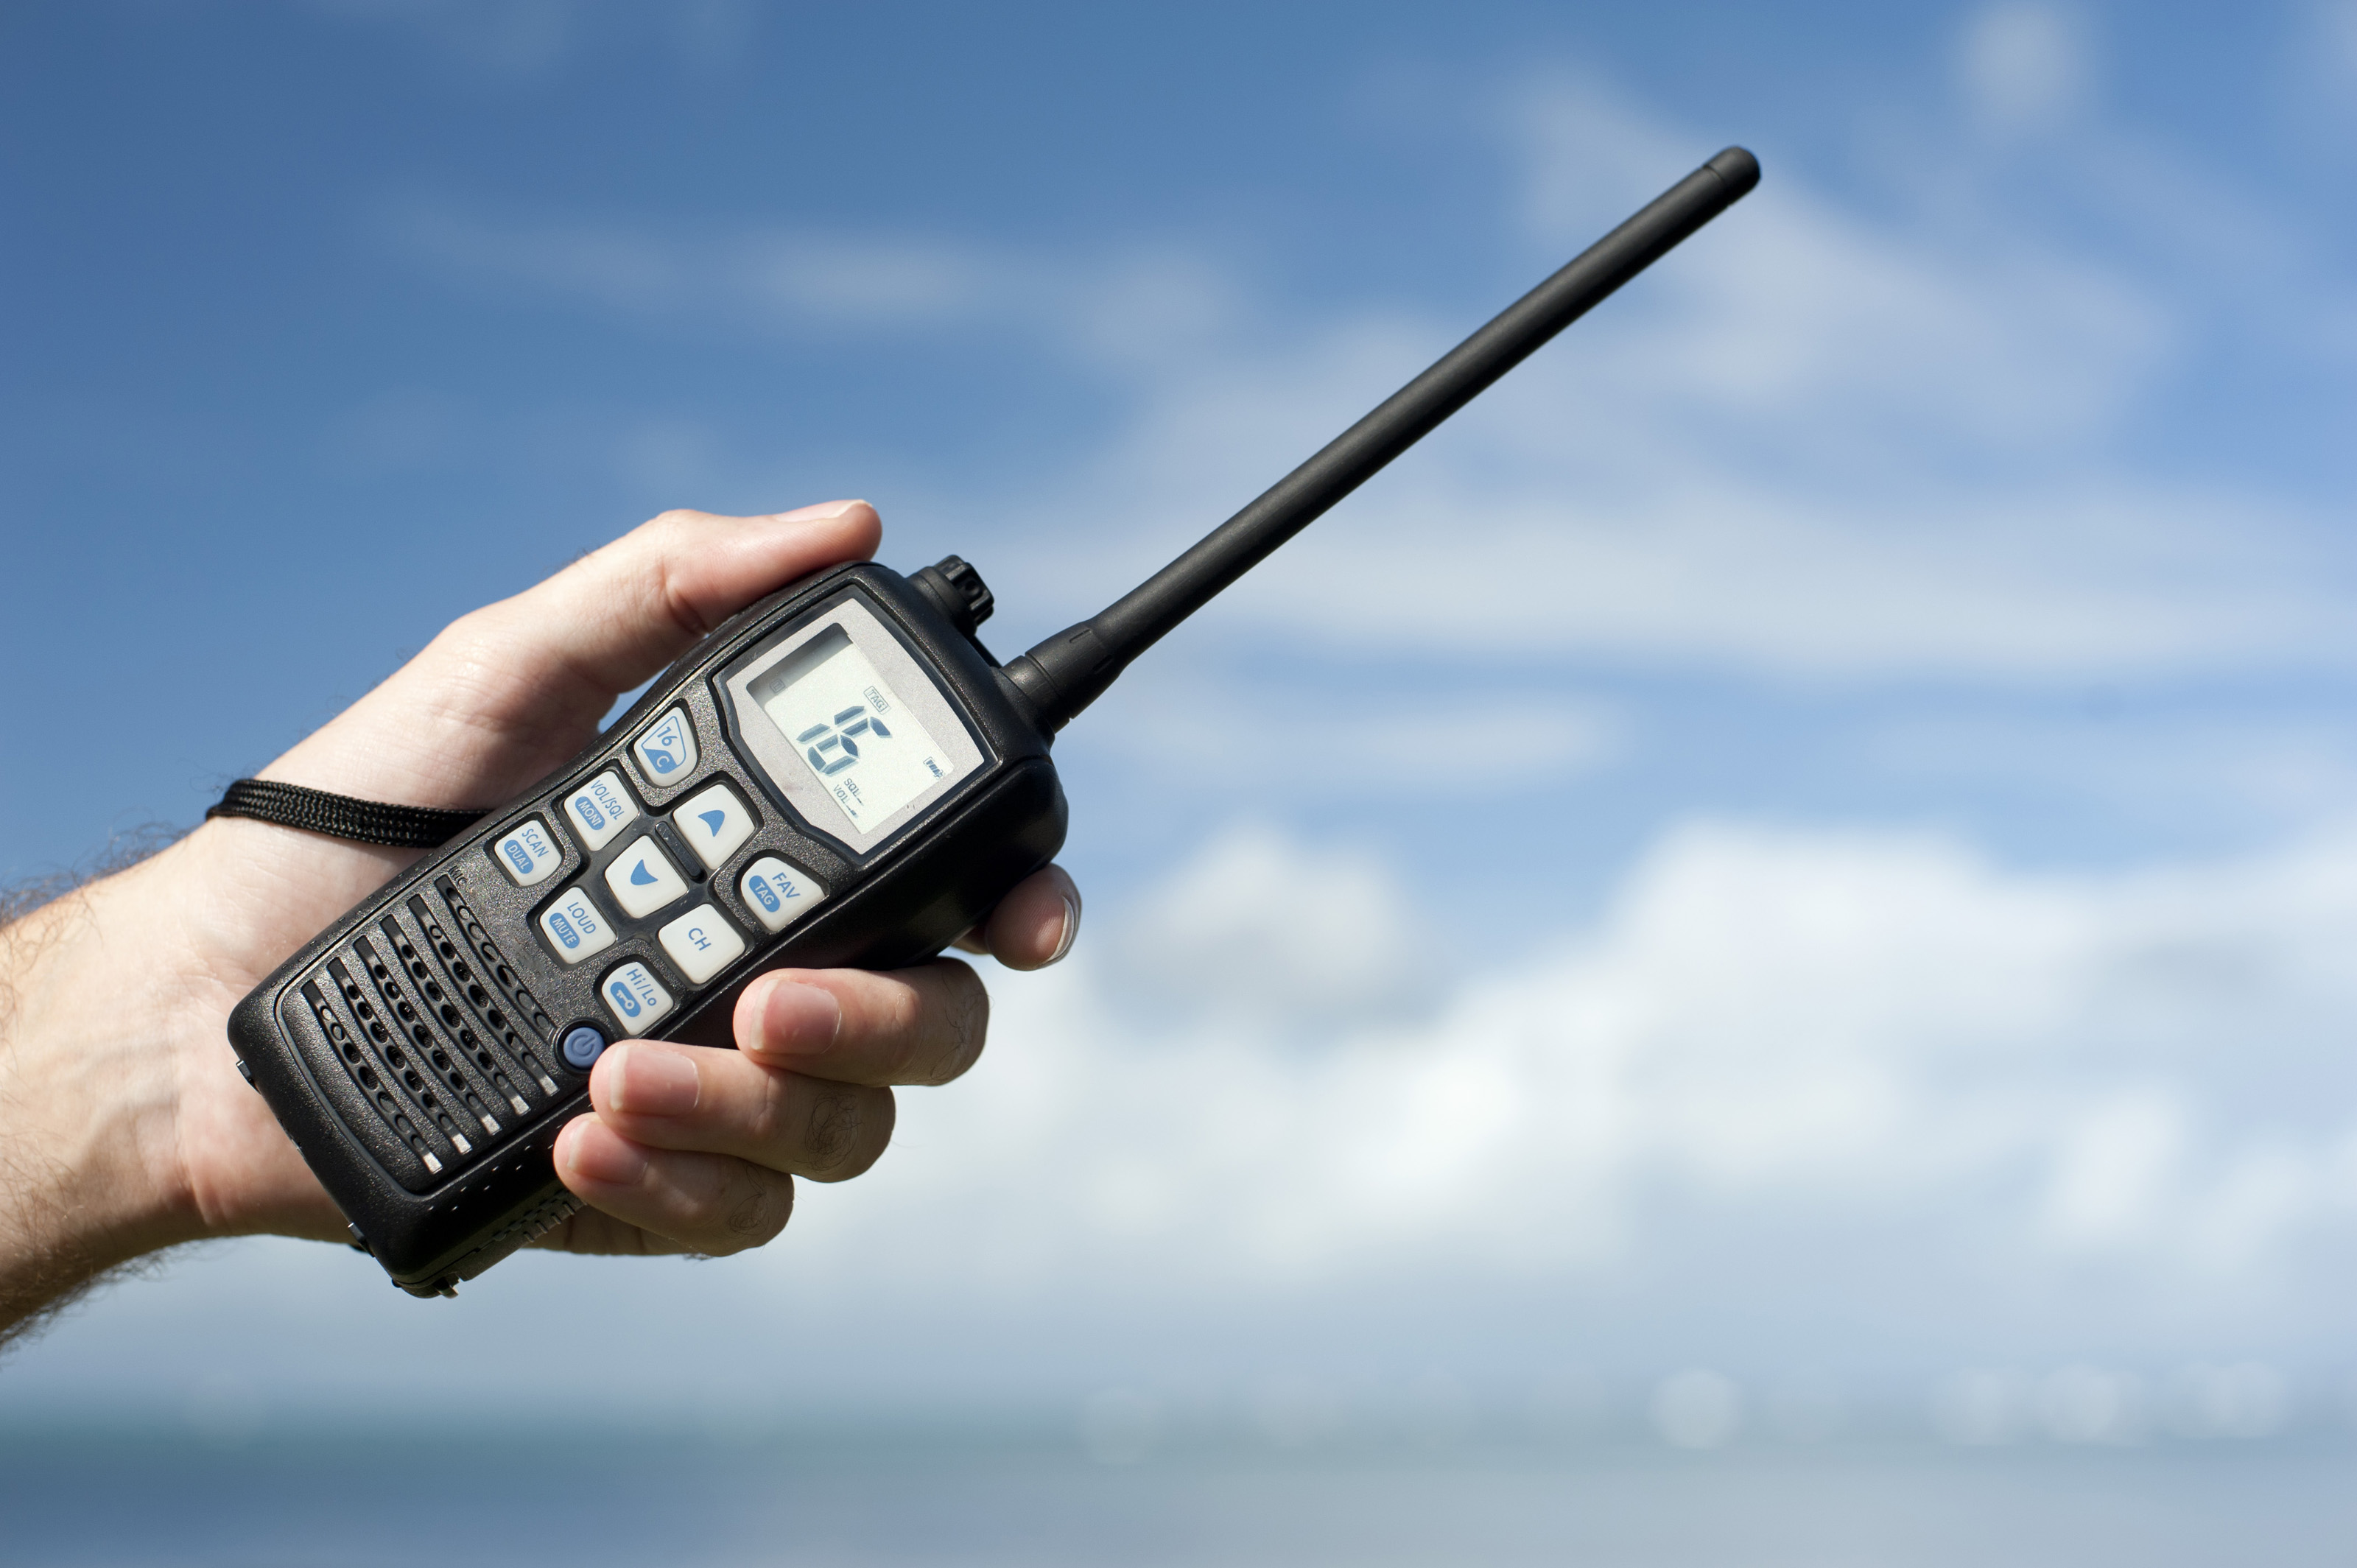 Handheld walkie talkie radio-8134